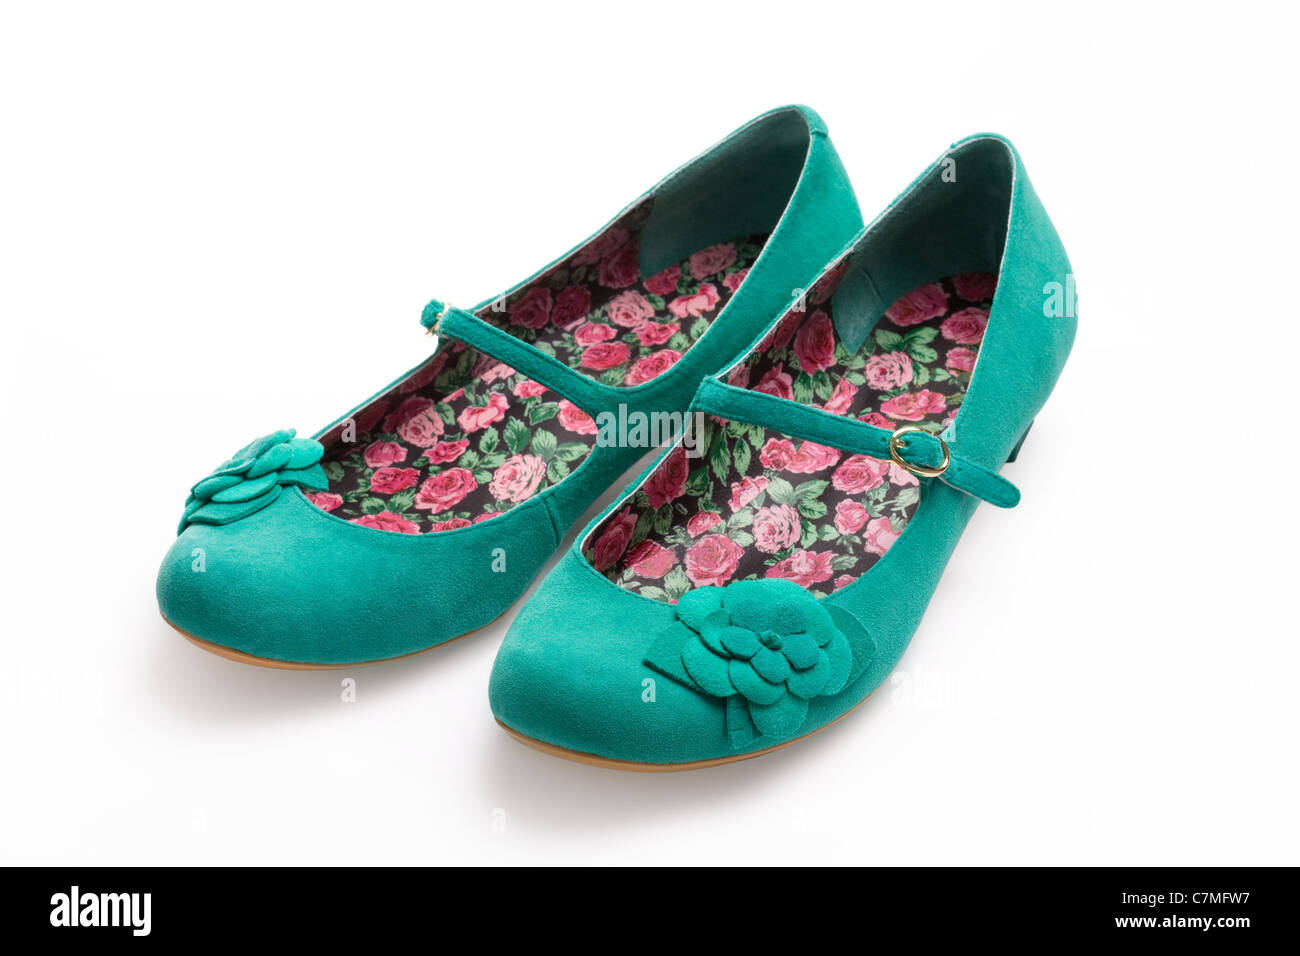 Green suede shoes - Stock Image